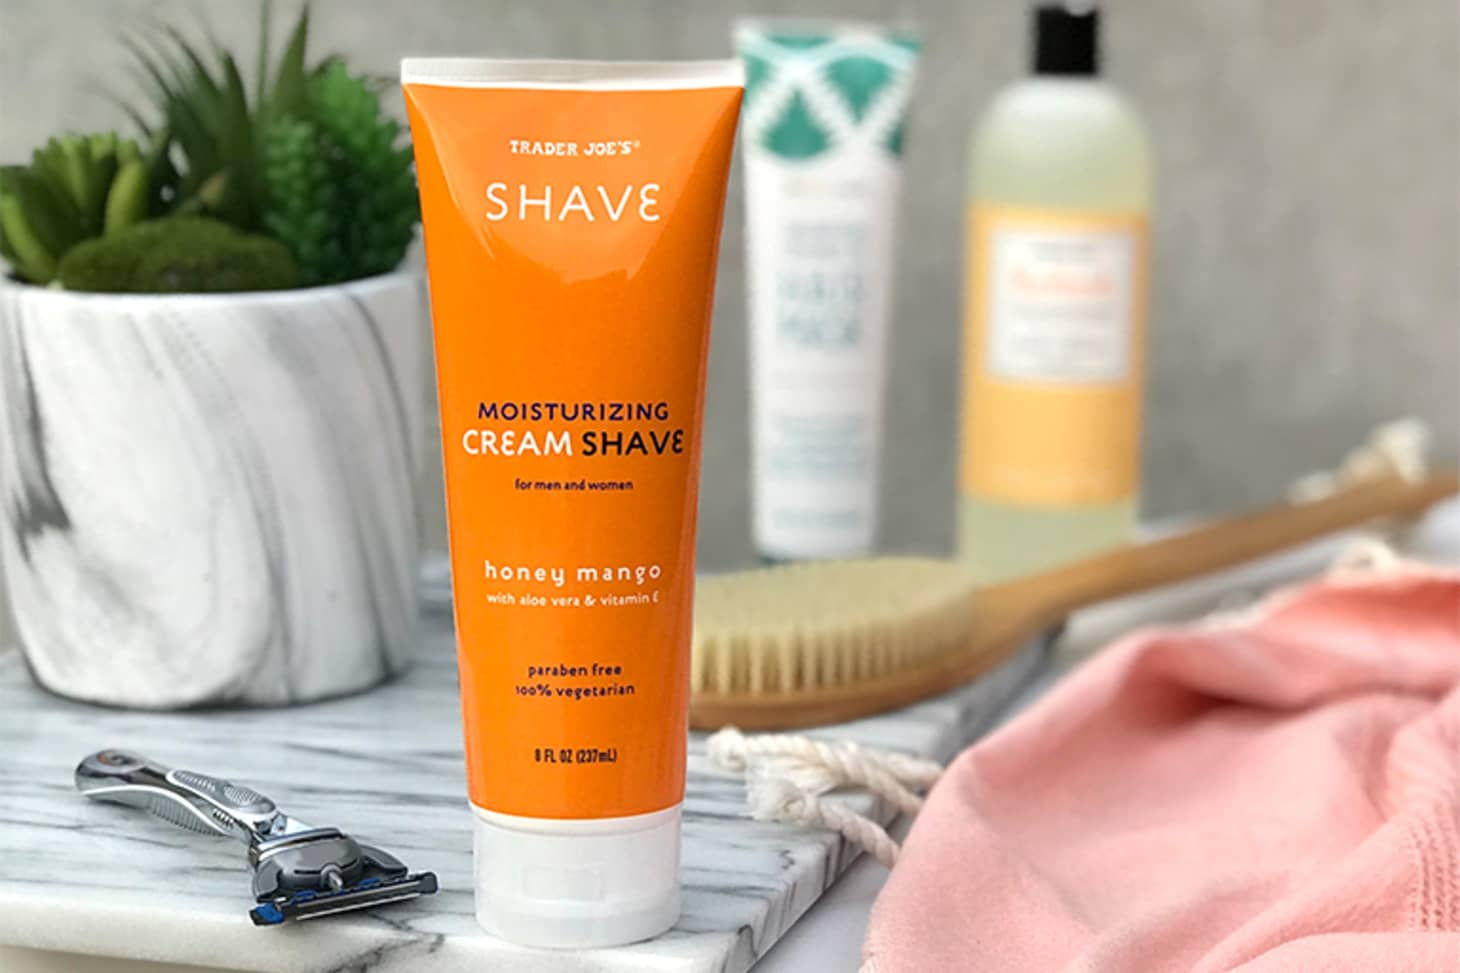 The 9 Best Beauty and Grooming Products at Trader Joe's